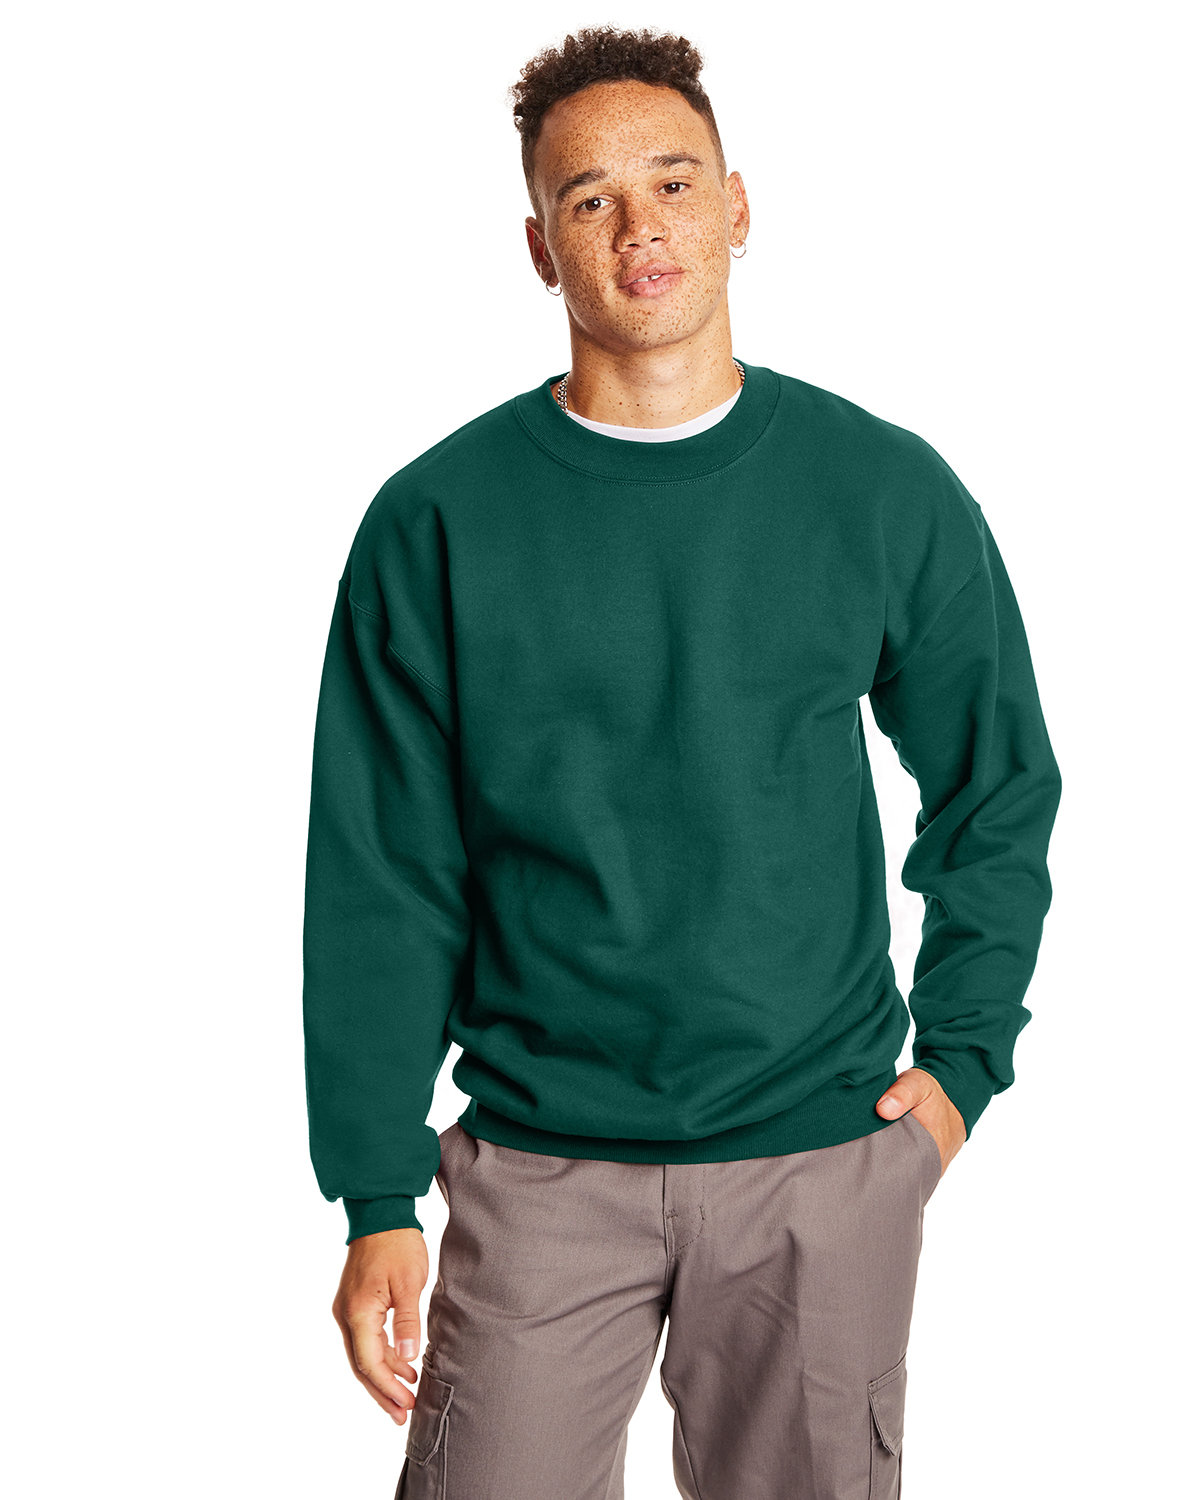 Hanes Adult Ultimate Cotton® 90/10 Fleece Crew DEEP FOREST